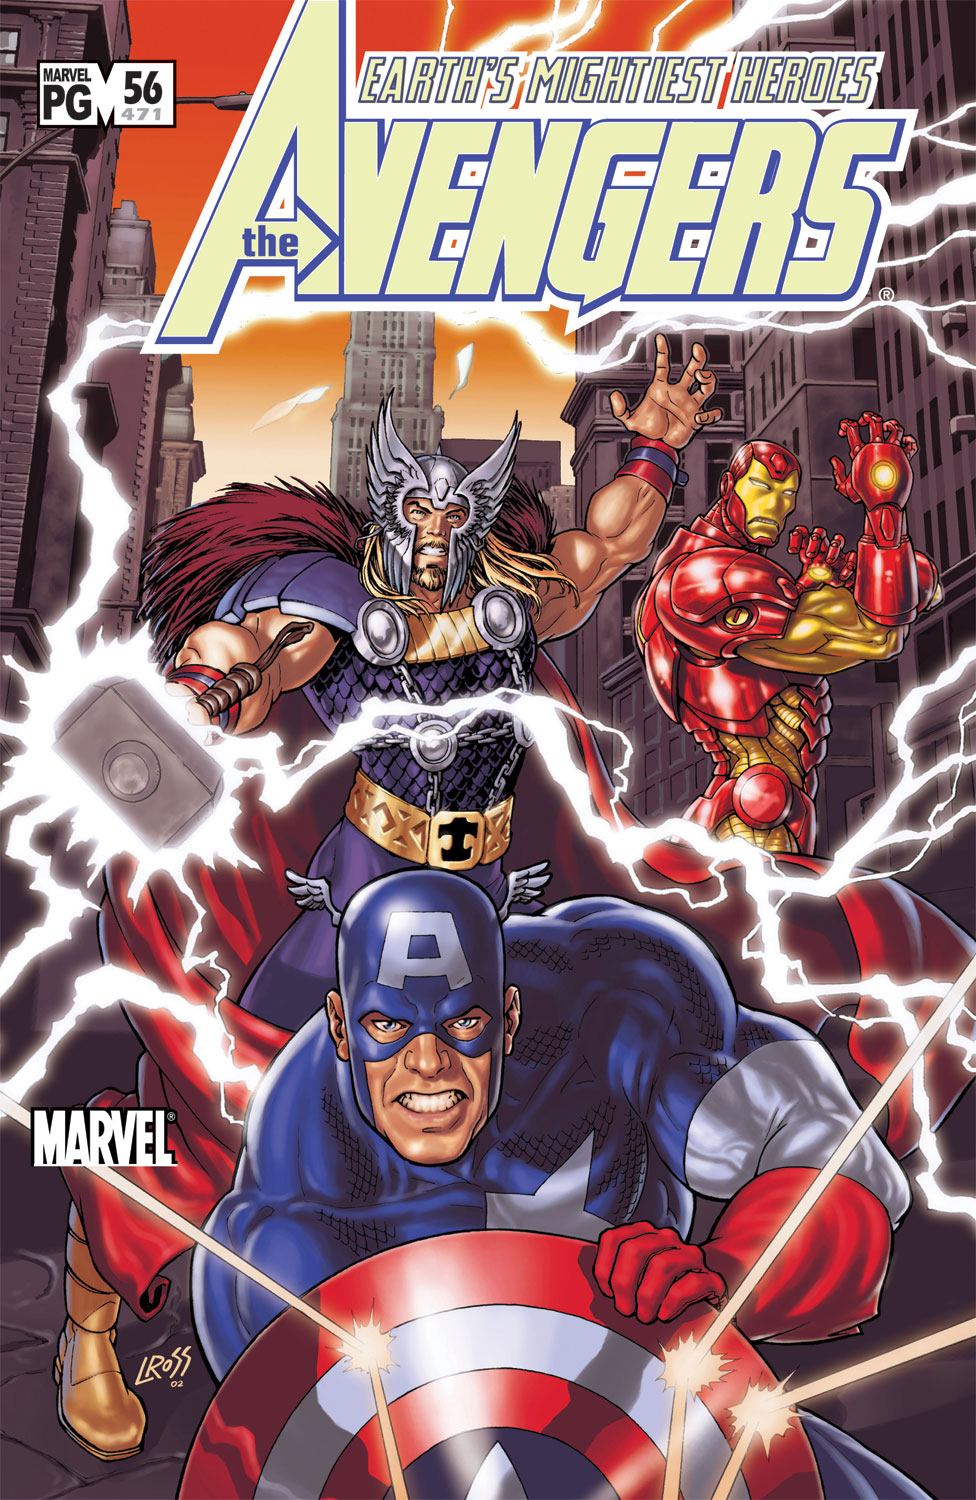 Read online Avengers (1998) comic -  Issue #56 - 1